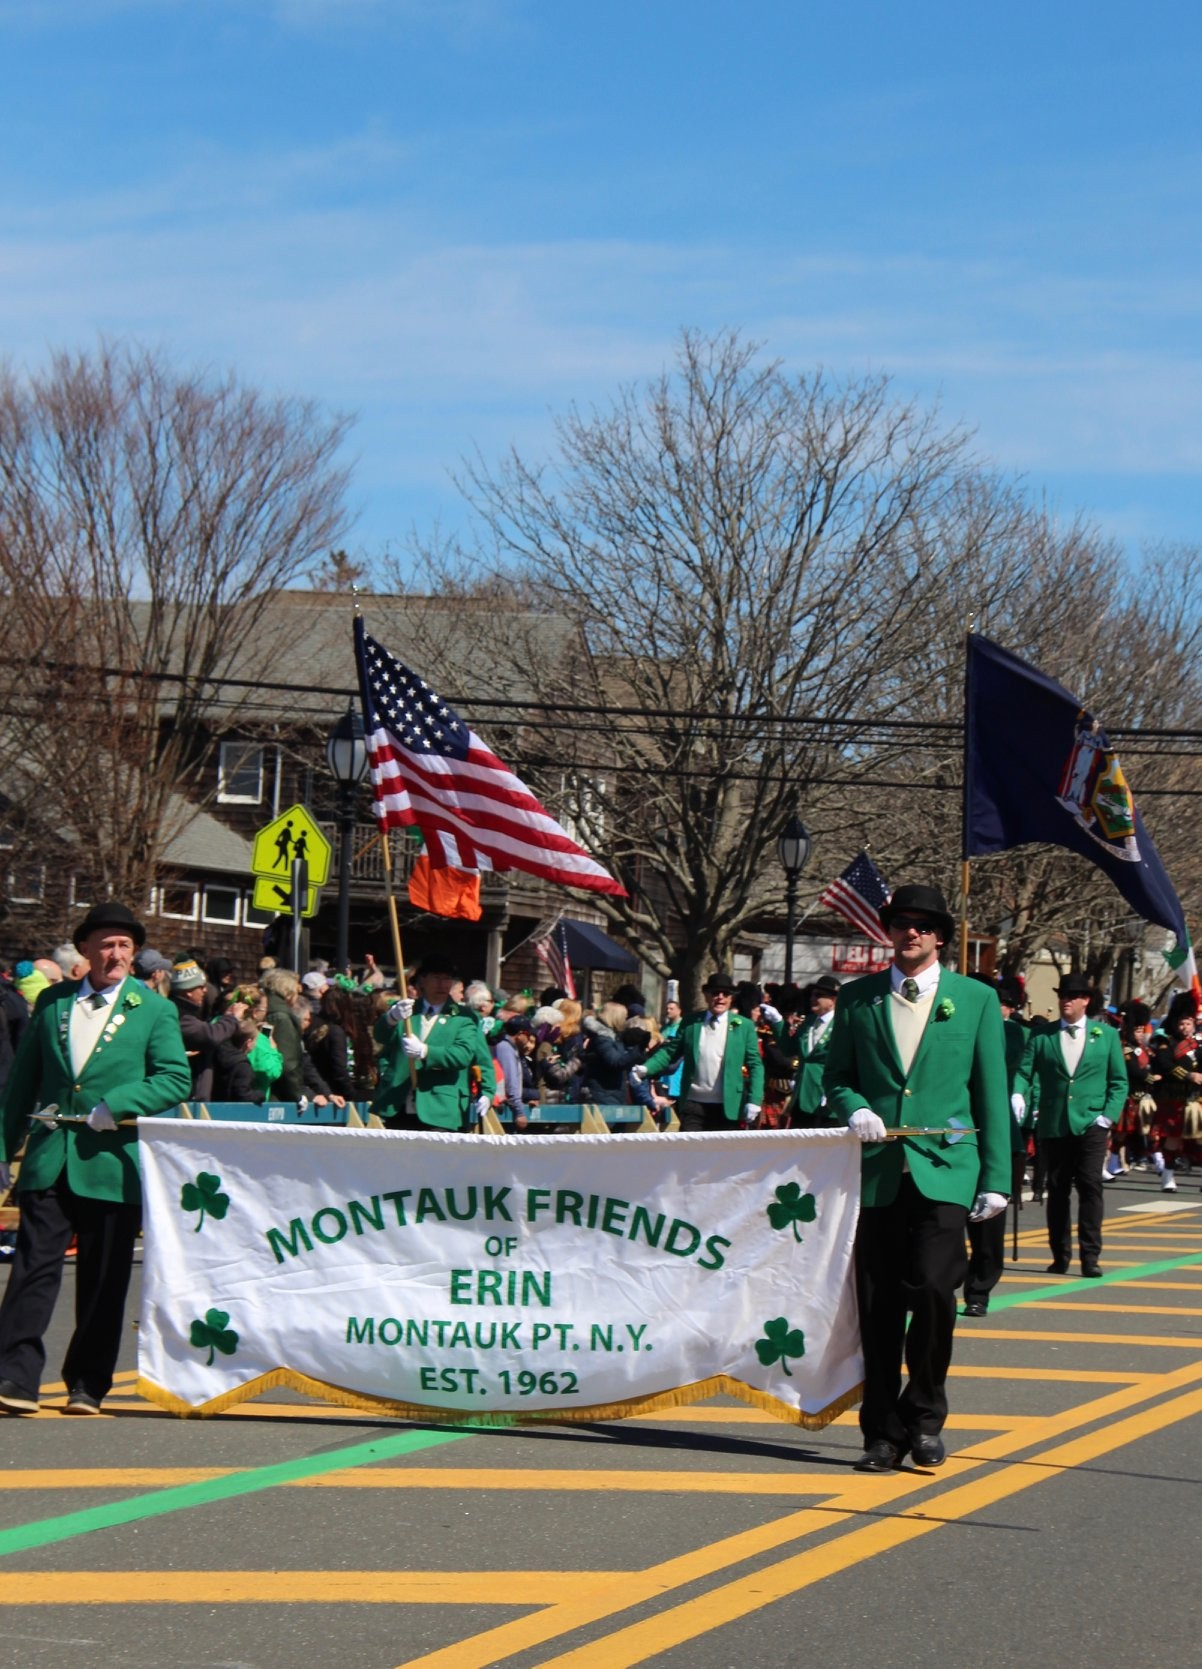 St. Patrick's Day Parade in Montauk